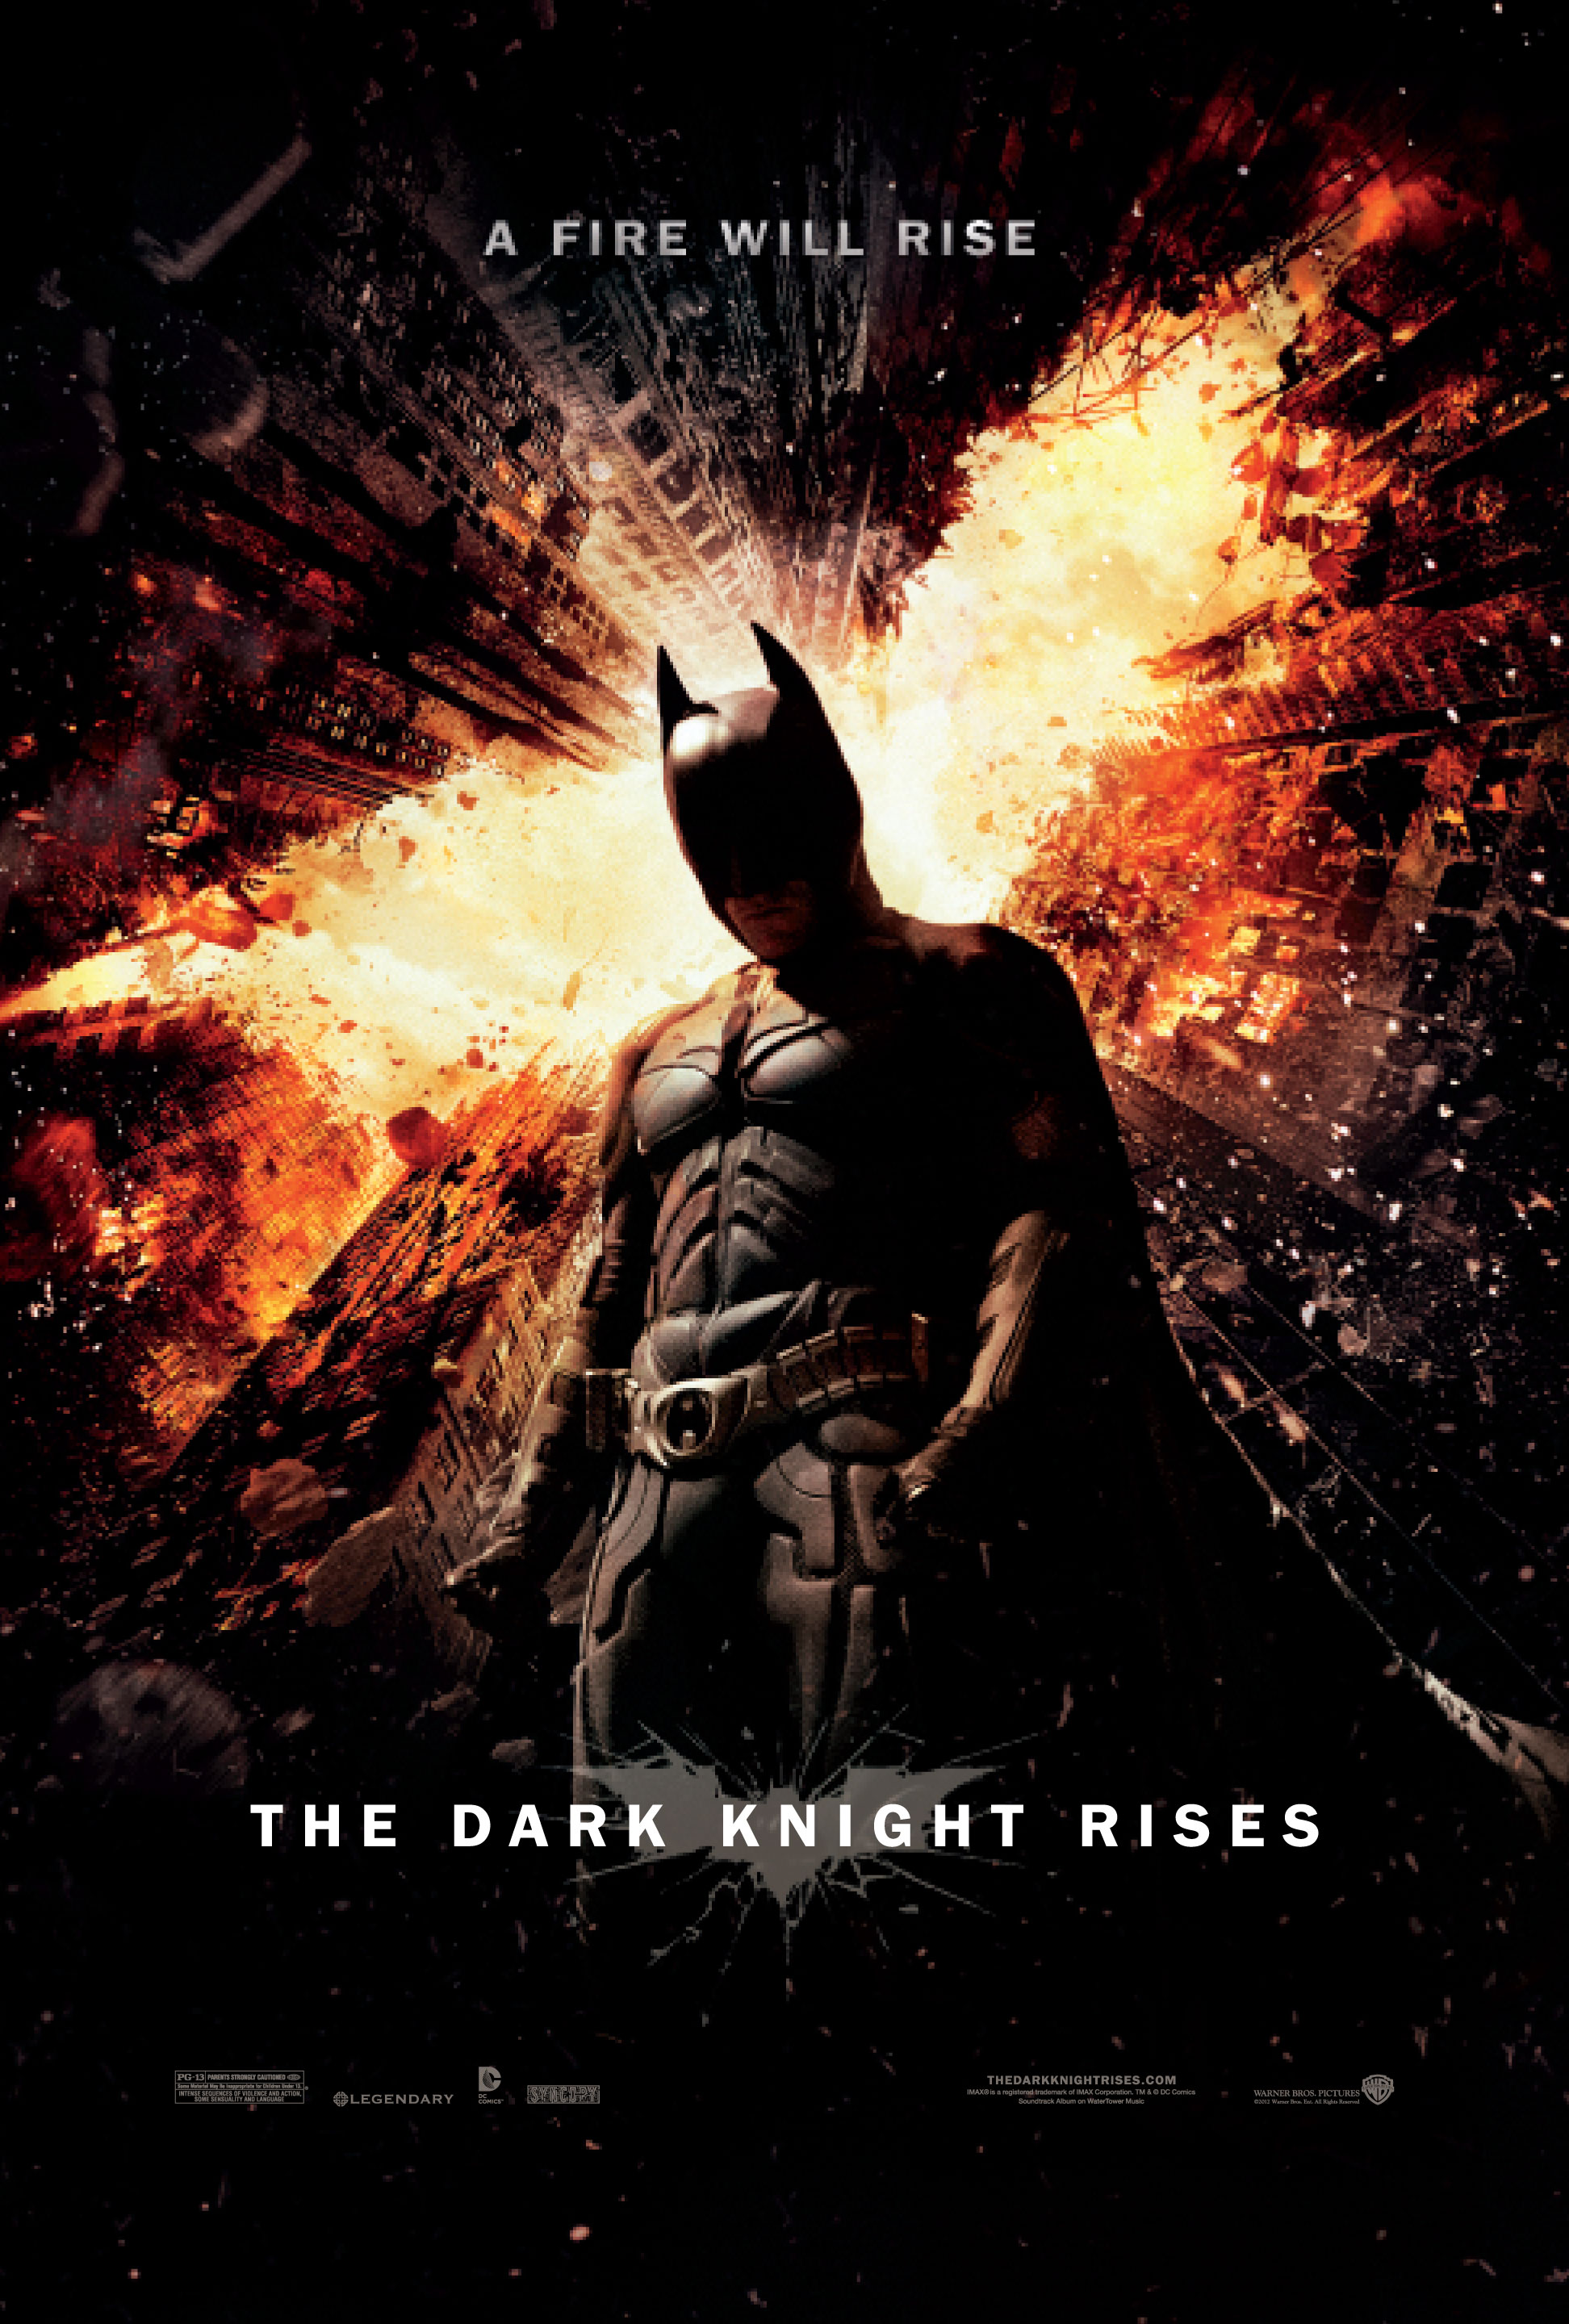 The Dark Night Rises